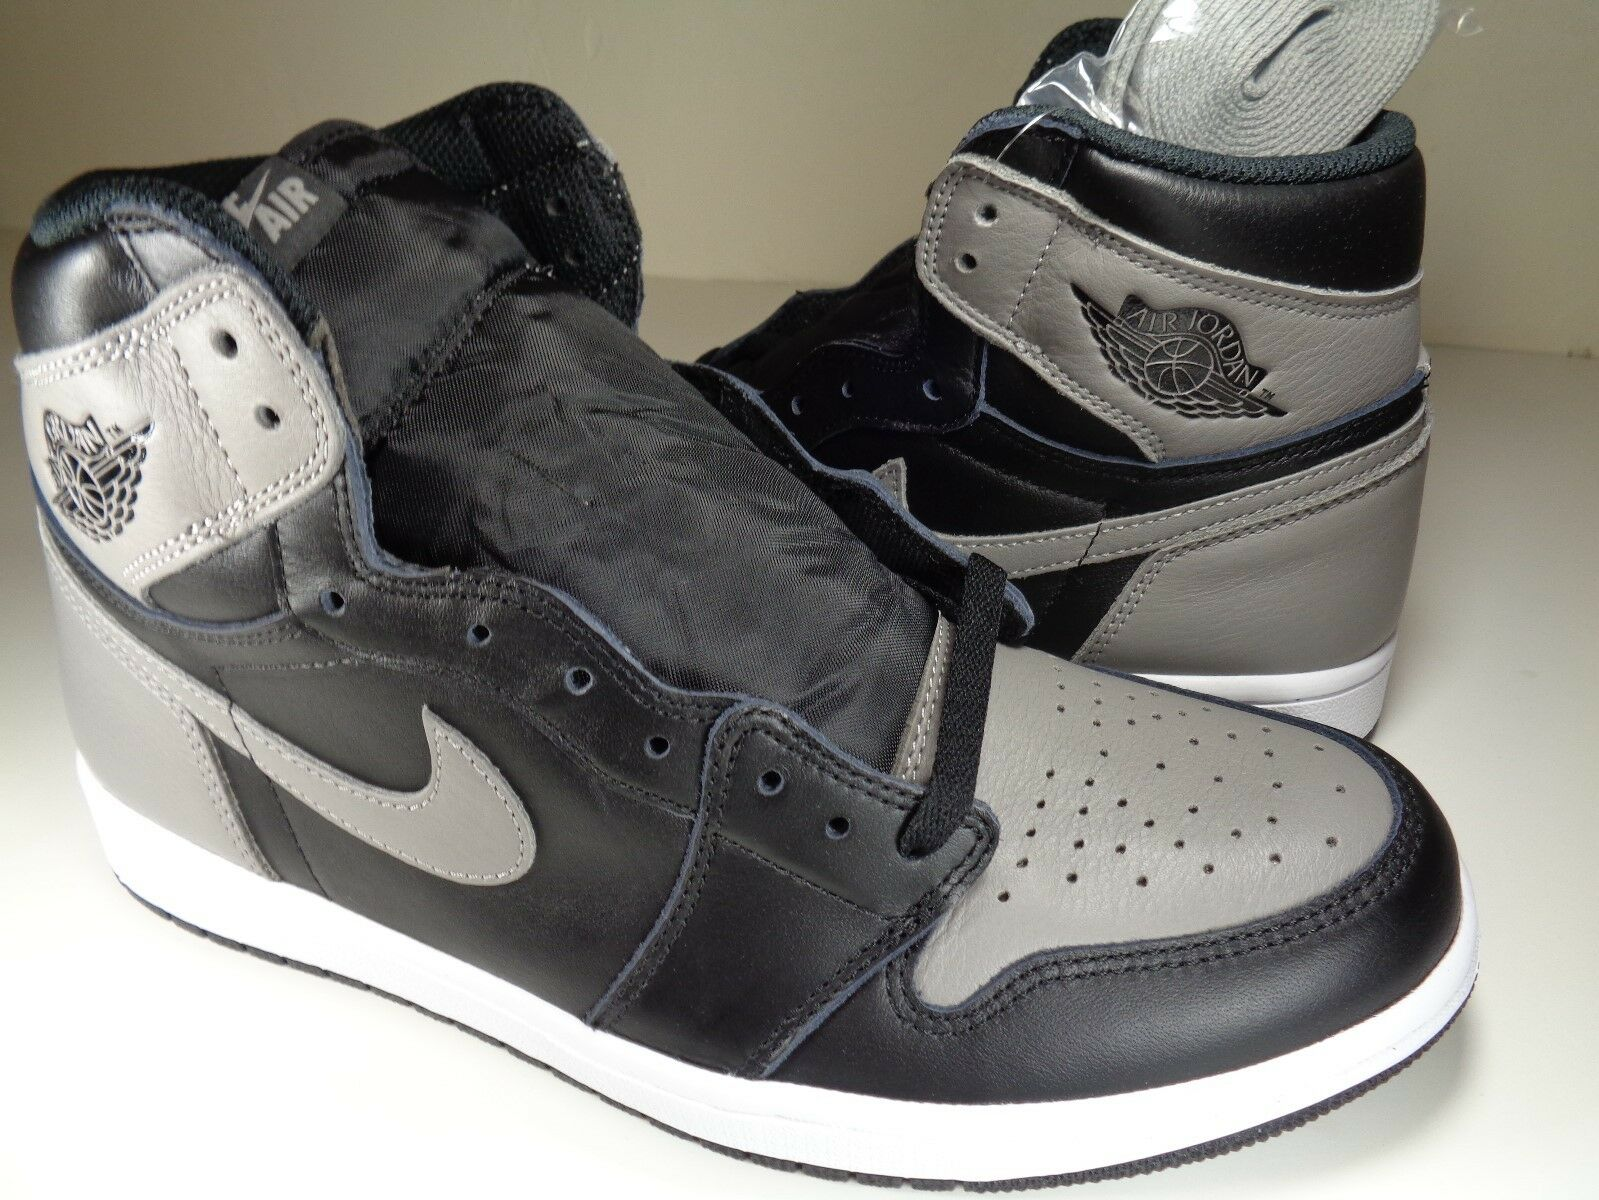 Nike Air Jordan 1 Retro High OG Shadow Black White Grey SZ 12 (555088-013)